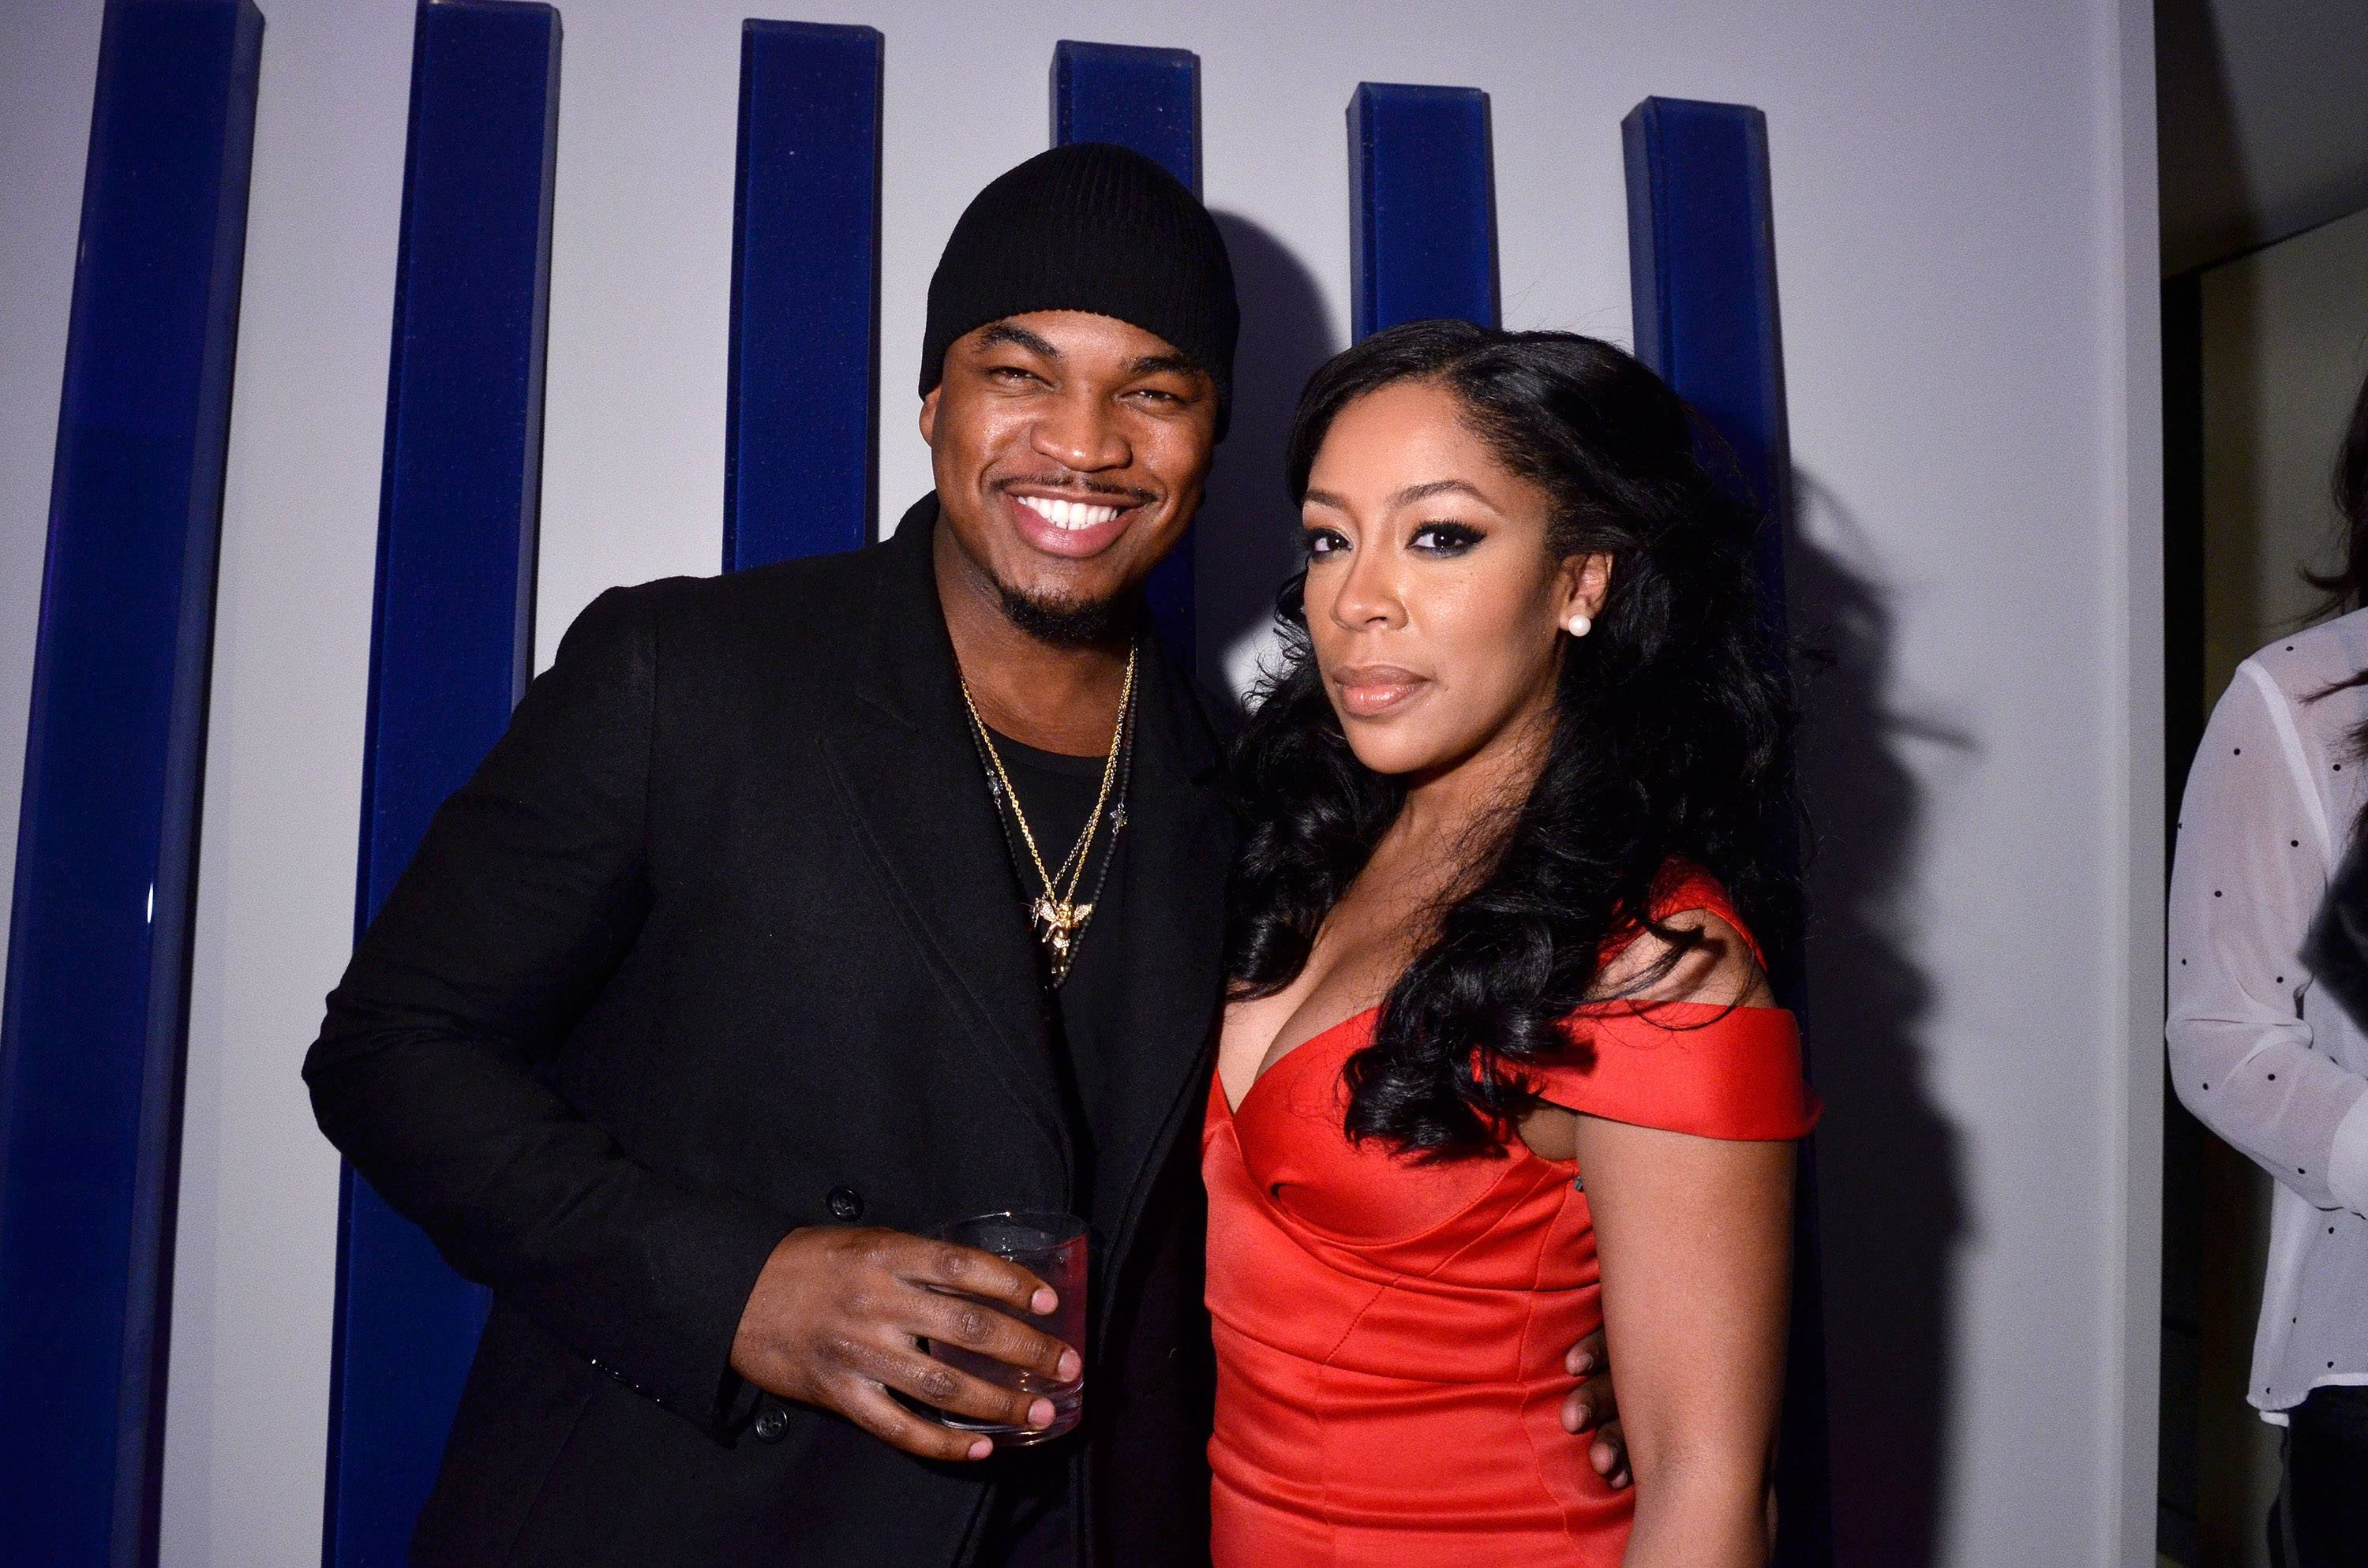 Music Matters - Taking a break from the stage, performers Ne-Yo and K.Michelle are sighted together.(Photo: Kris Connor/BET/Getty Images for BET)